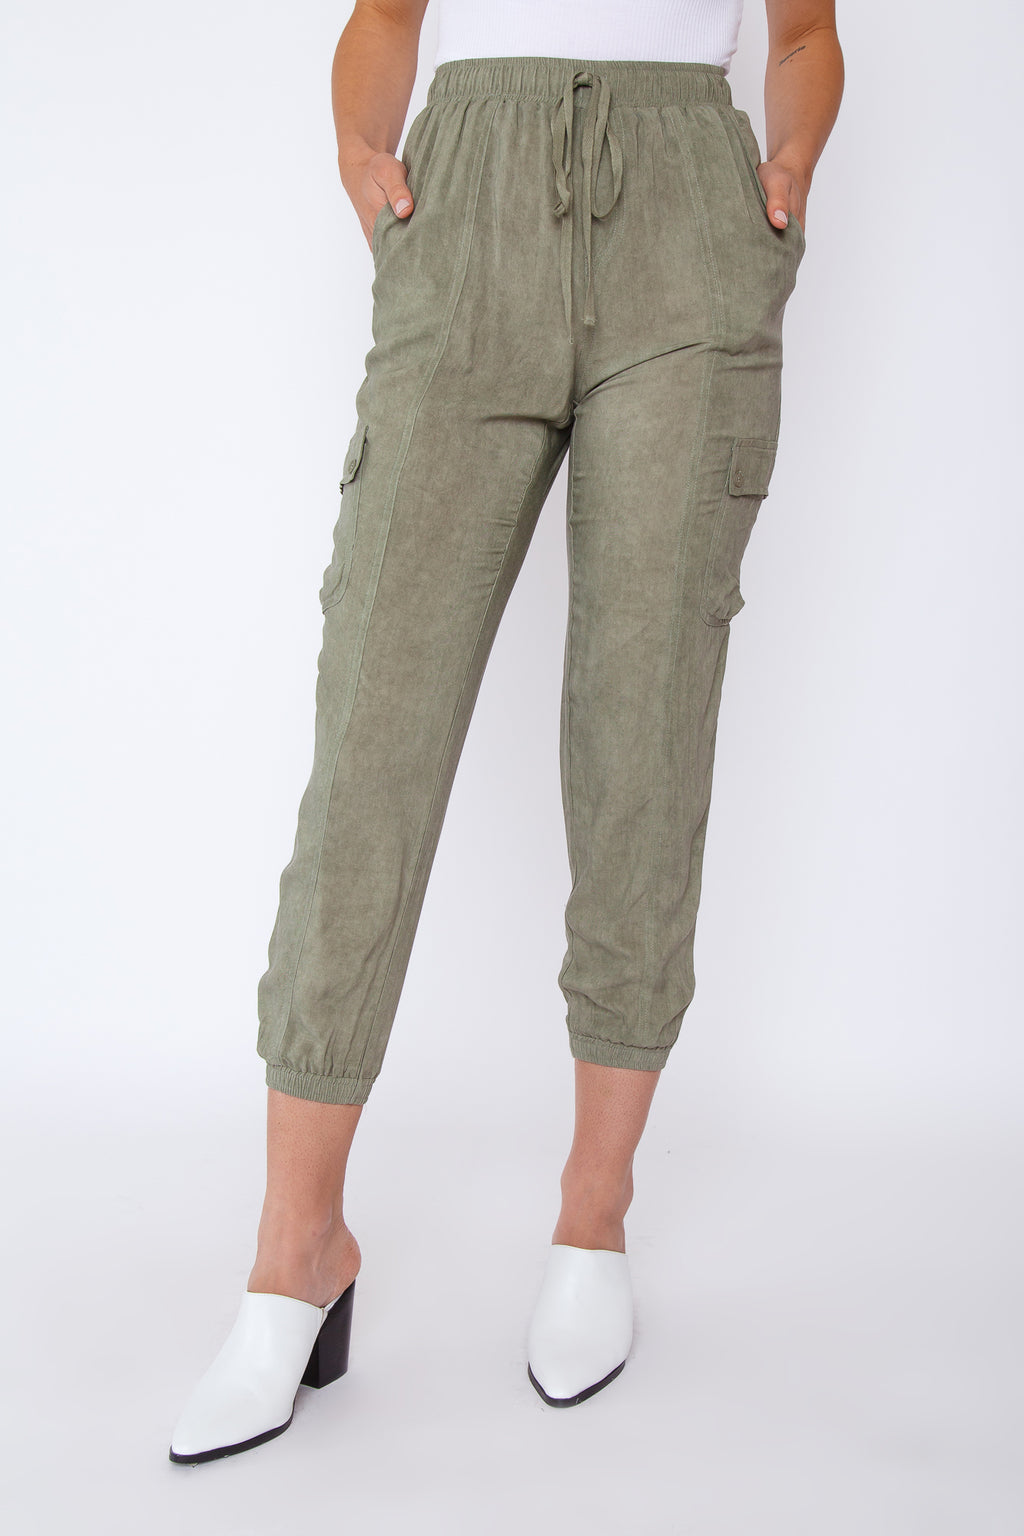 Mineral Cargo Pants